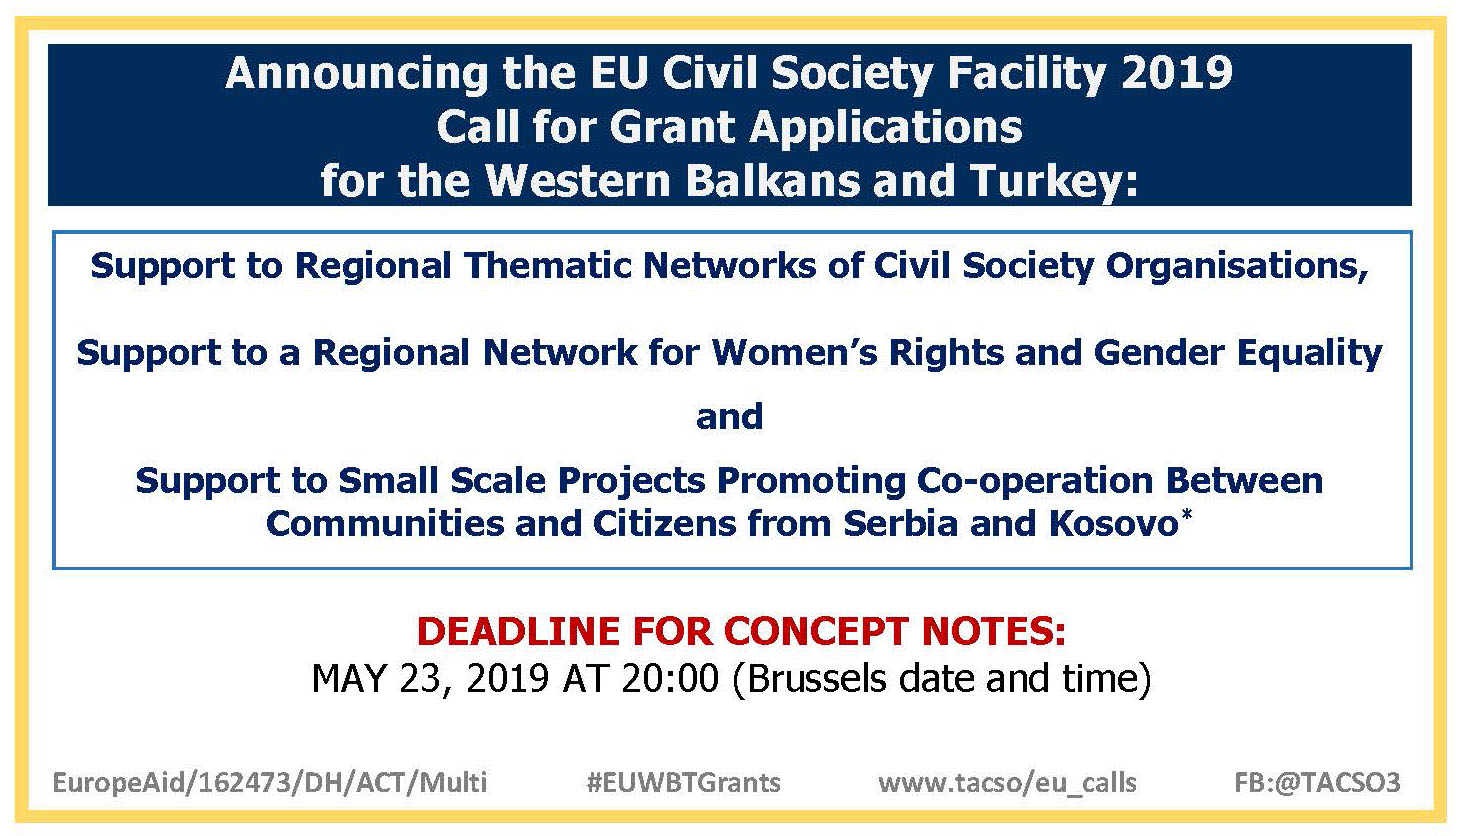 Announcing the EU Civil Society Facility 2019 Call for Applications for the Western Balkans and Turkey